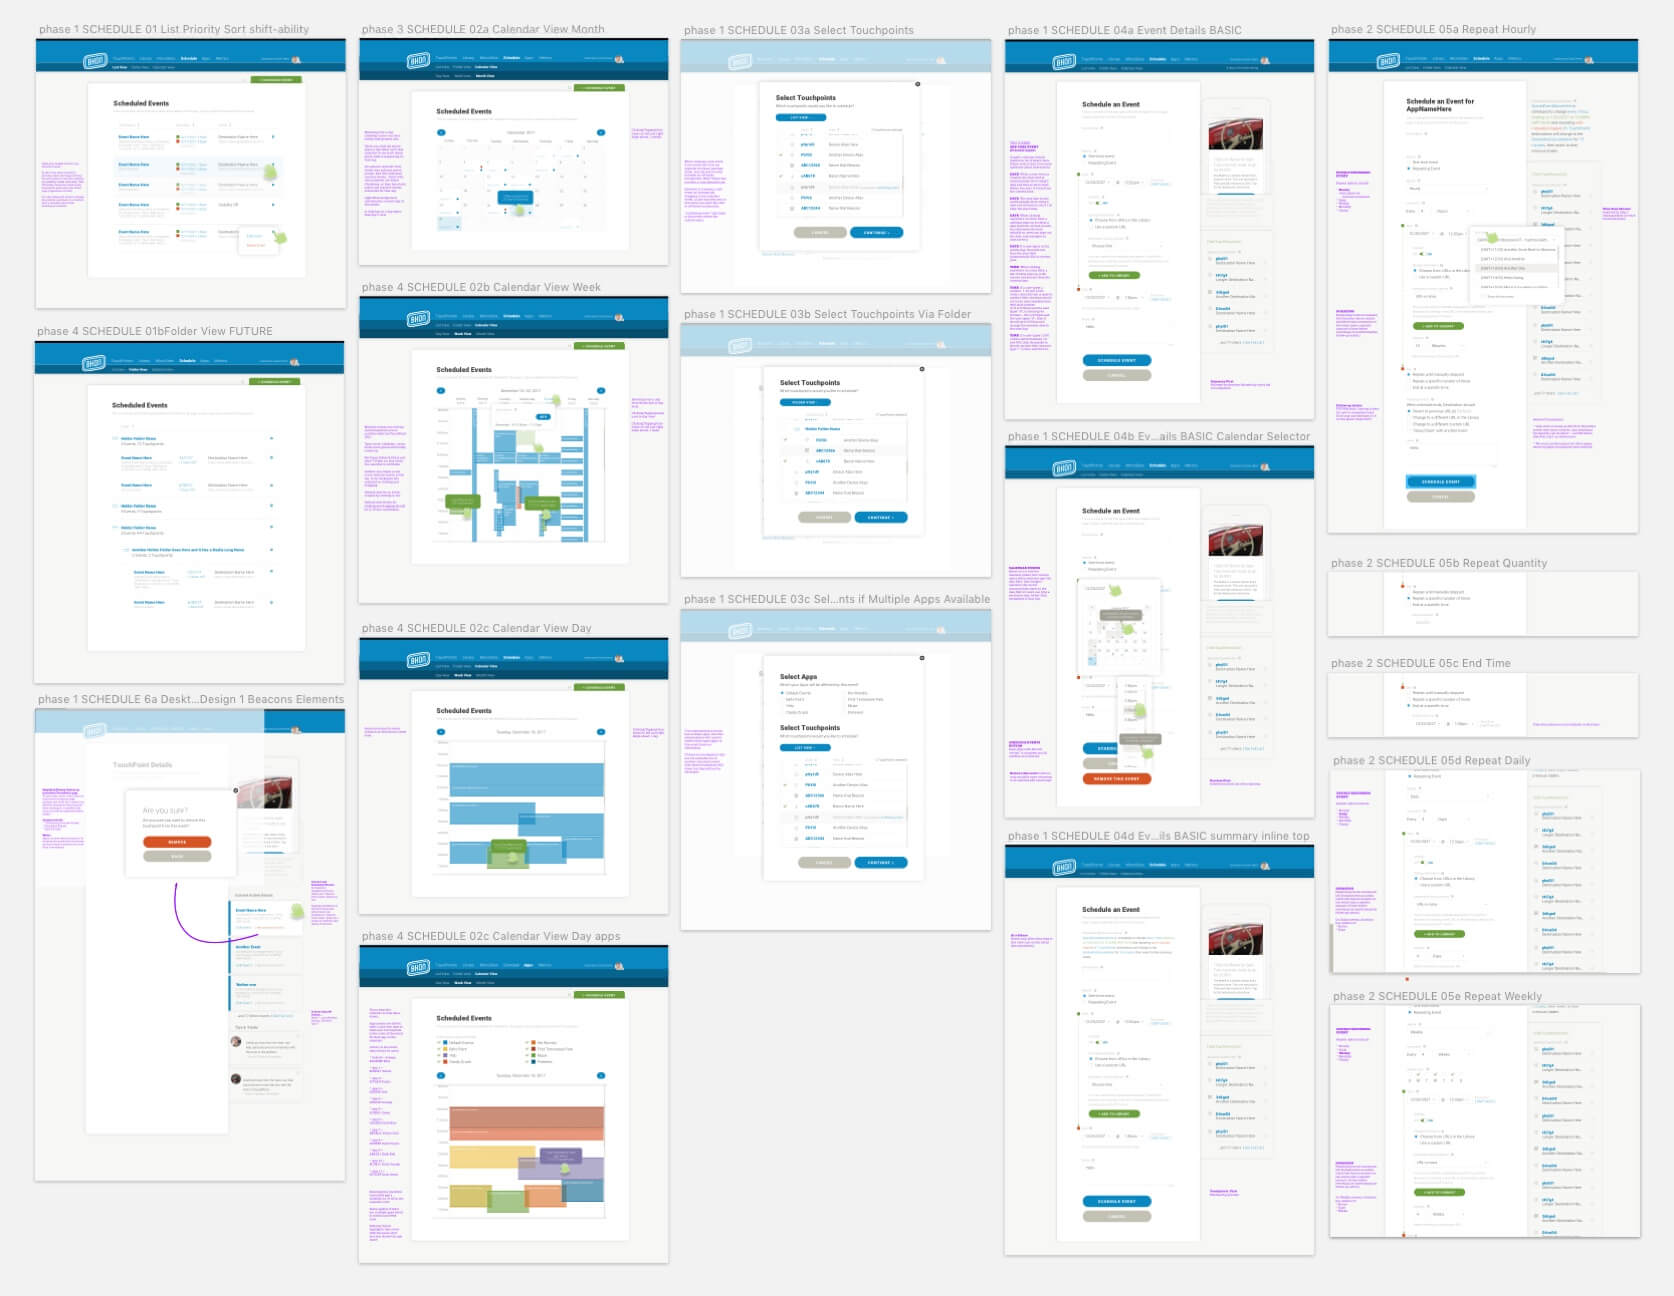 Phy Platform Wireframe Overview